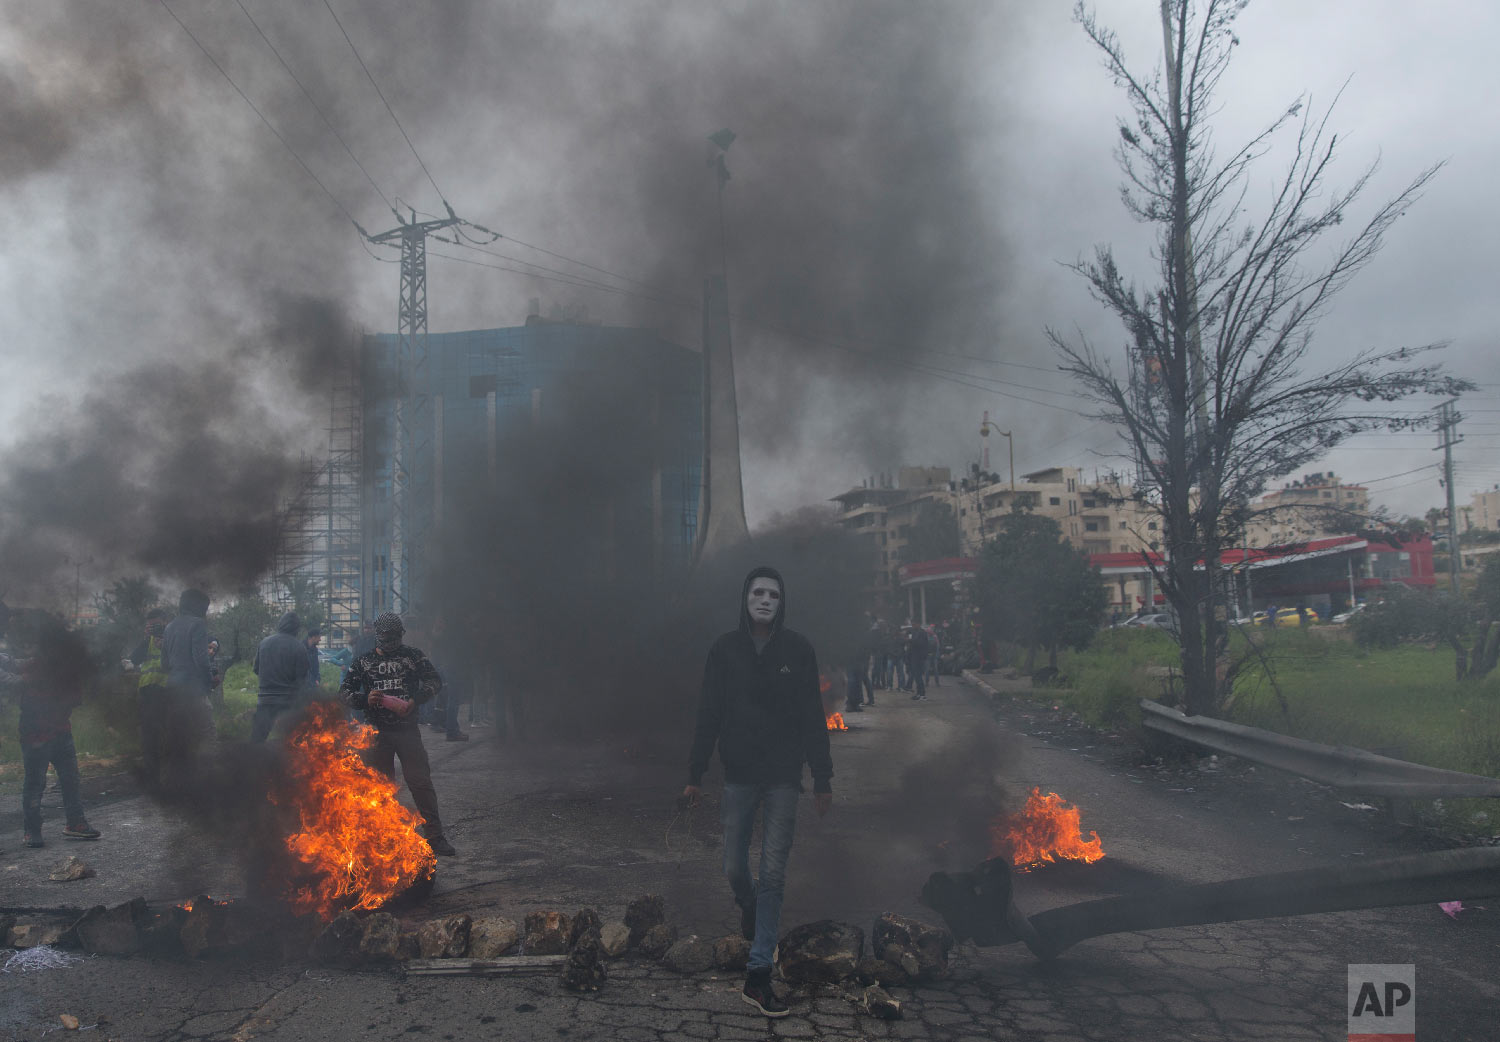 Palestinian protesters clash with Israeli troops following a protest to mark the Land Day in the West Bank city of Ramallah, Friday, March 30, 2018. (AP Photo/Nasser Nasser)